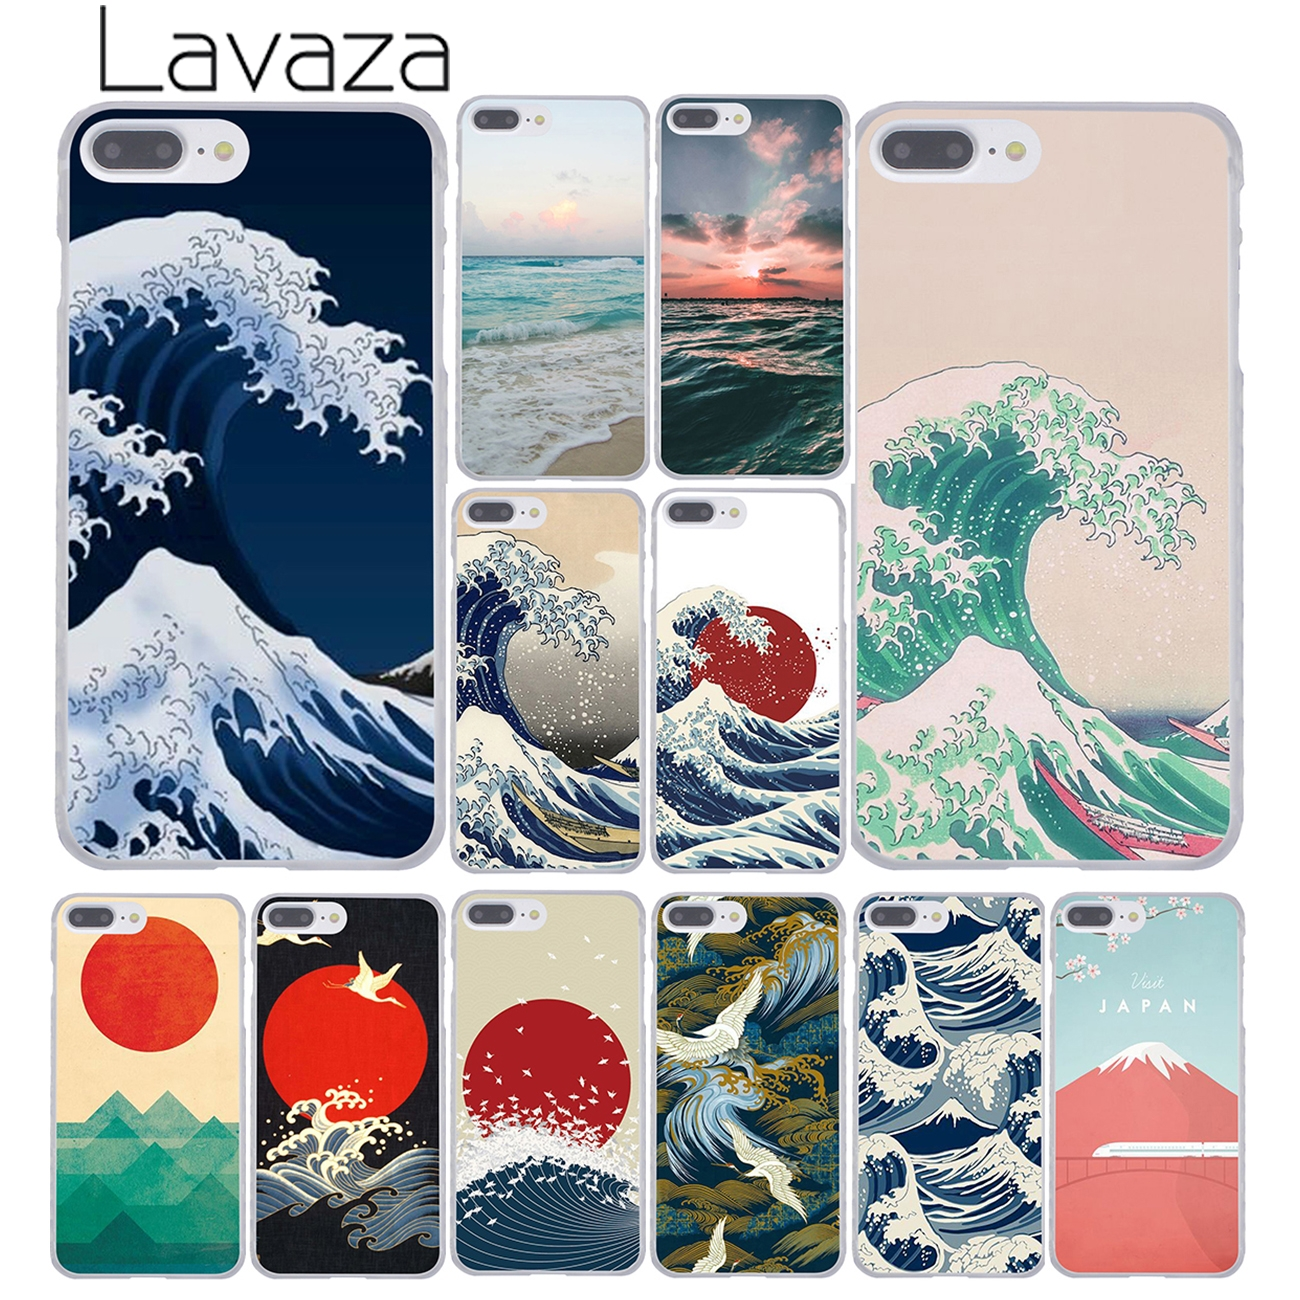 Lavaza Wave Art Japanese Green Illust Classic Hard Cover Case For Apple IPhone 8 7 6 6S Plus 5